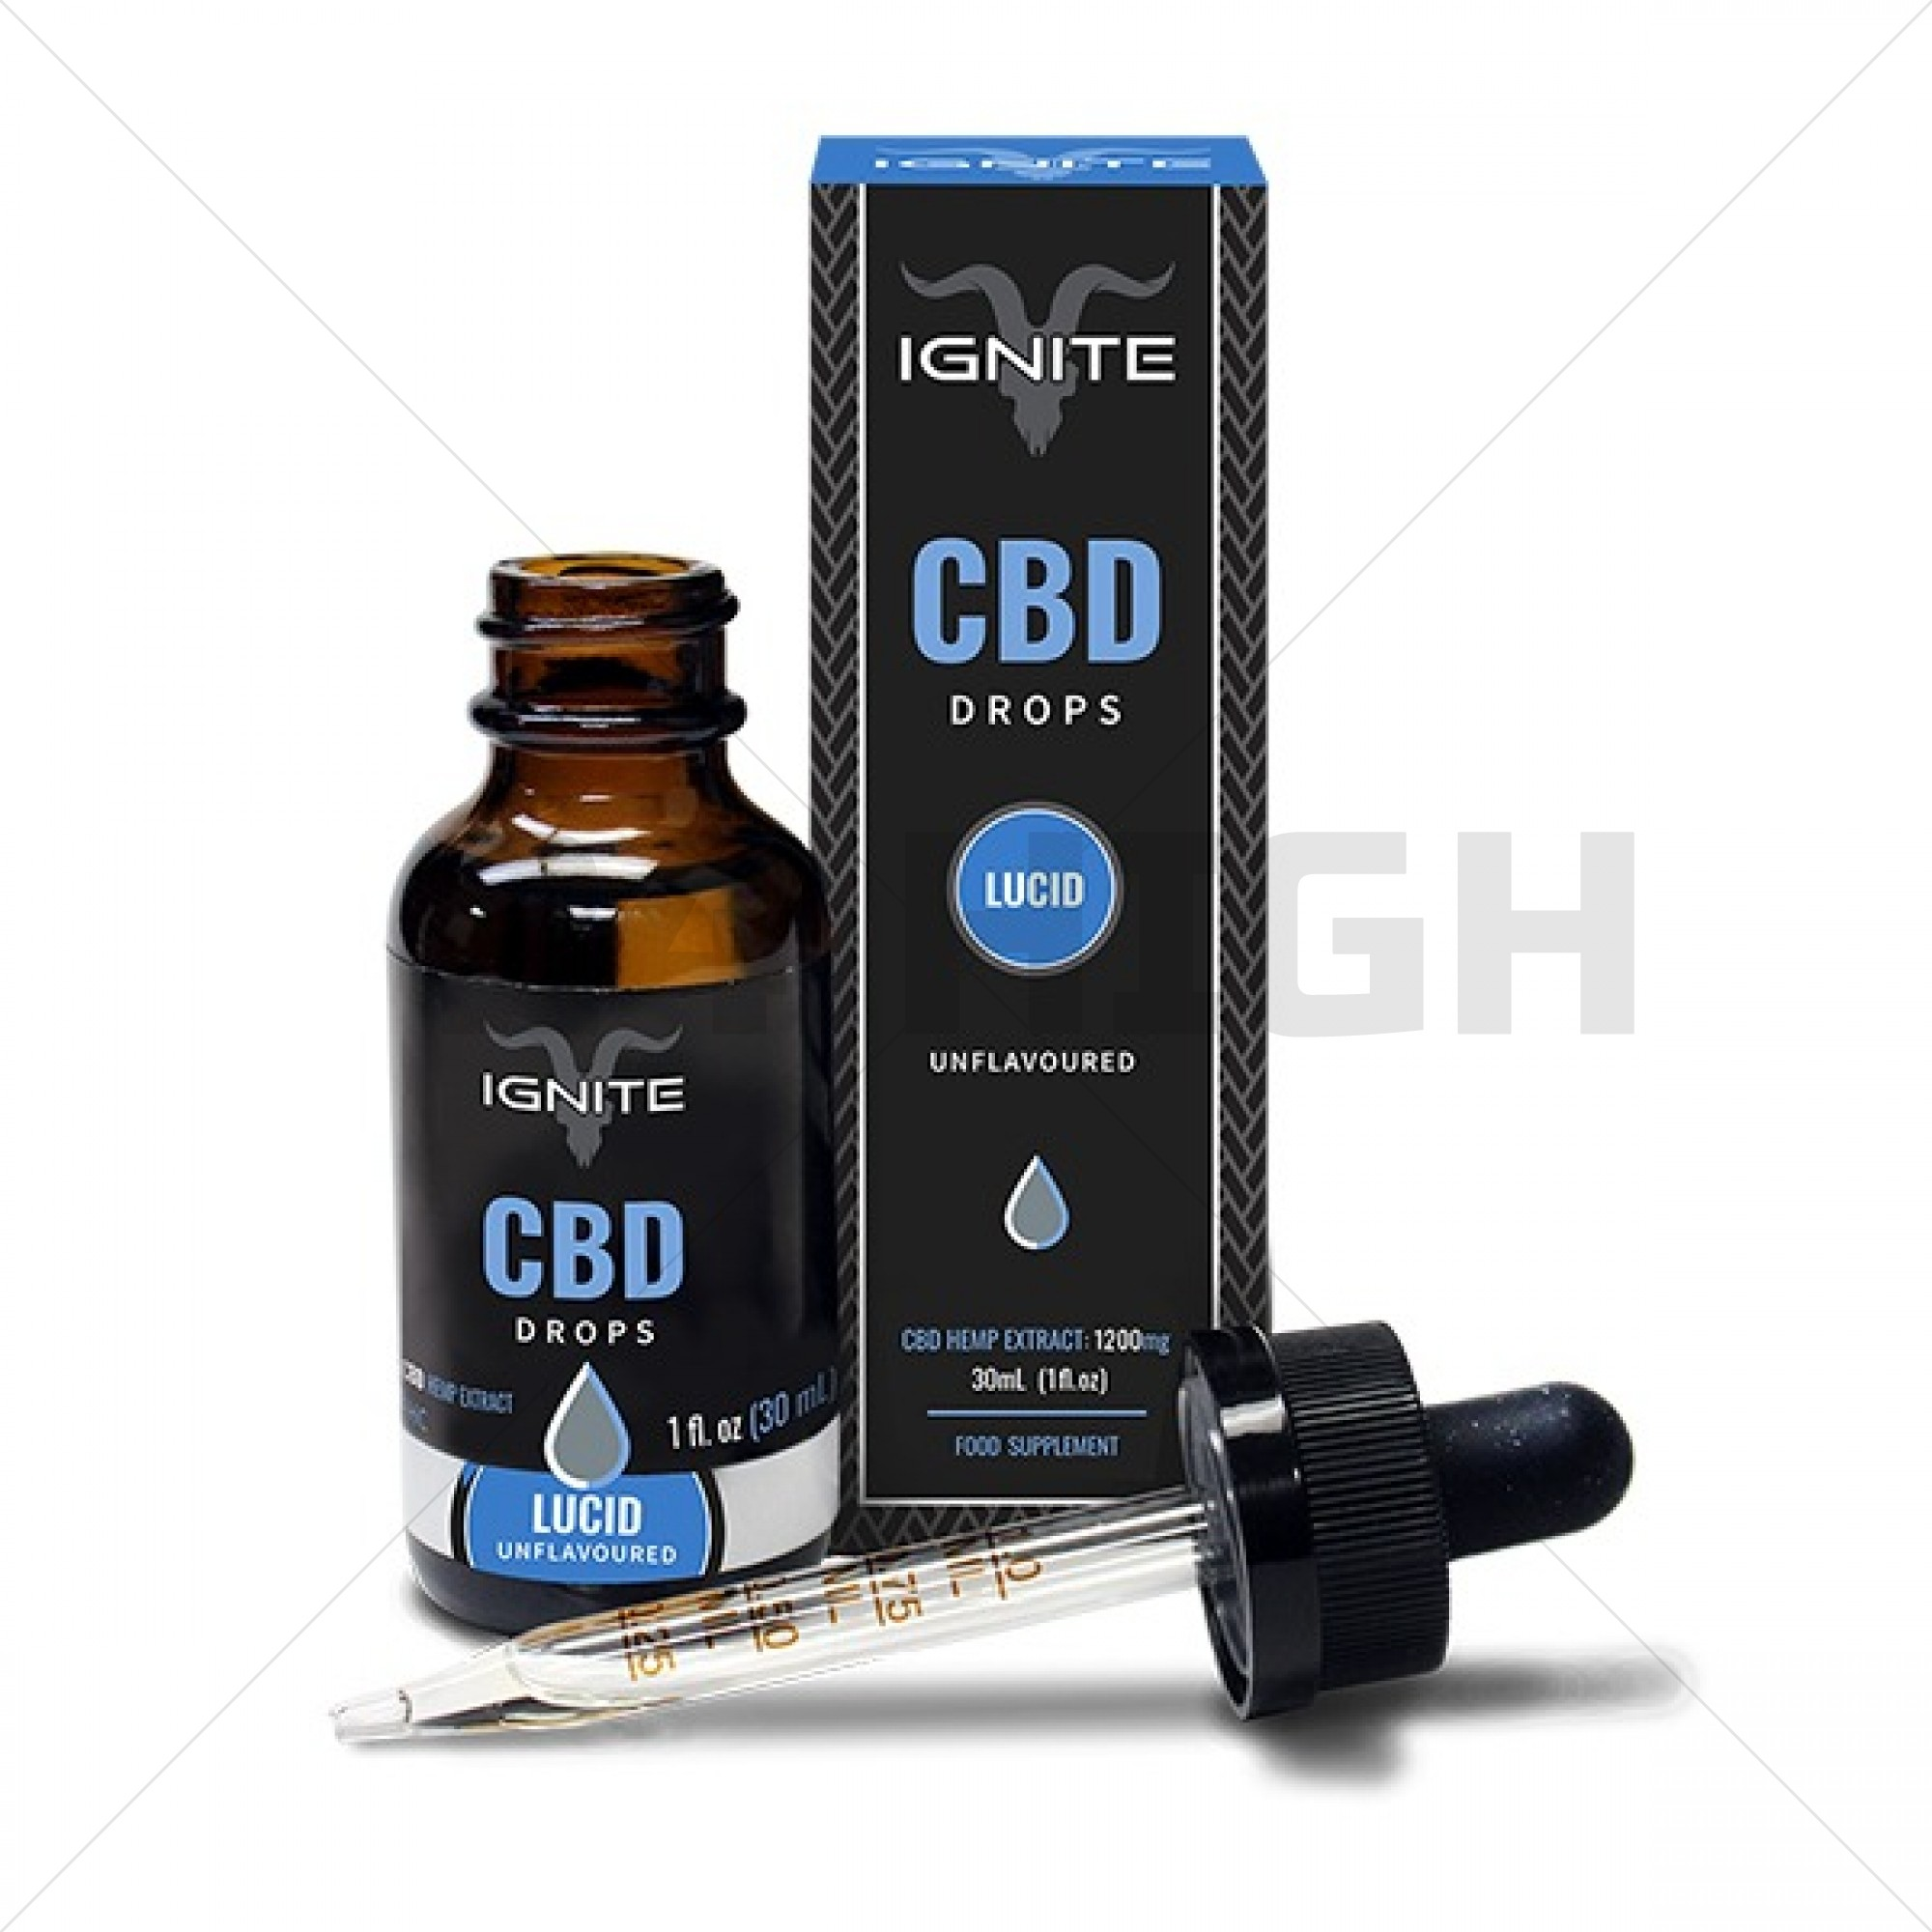 Ignite CBD Drops Lucid 500 mg - Unflavoured 30ml